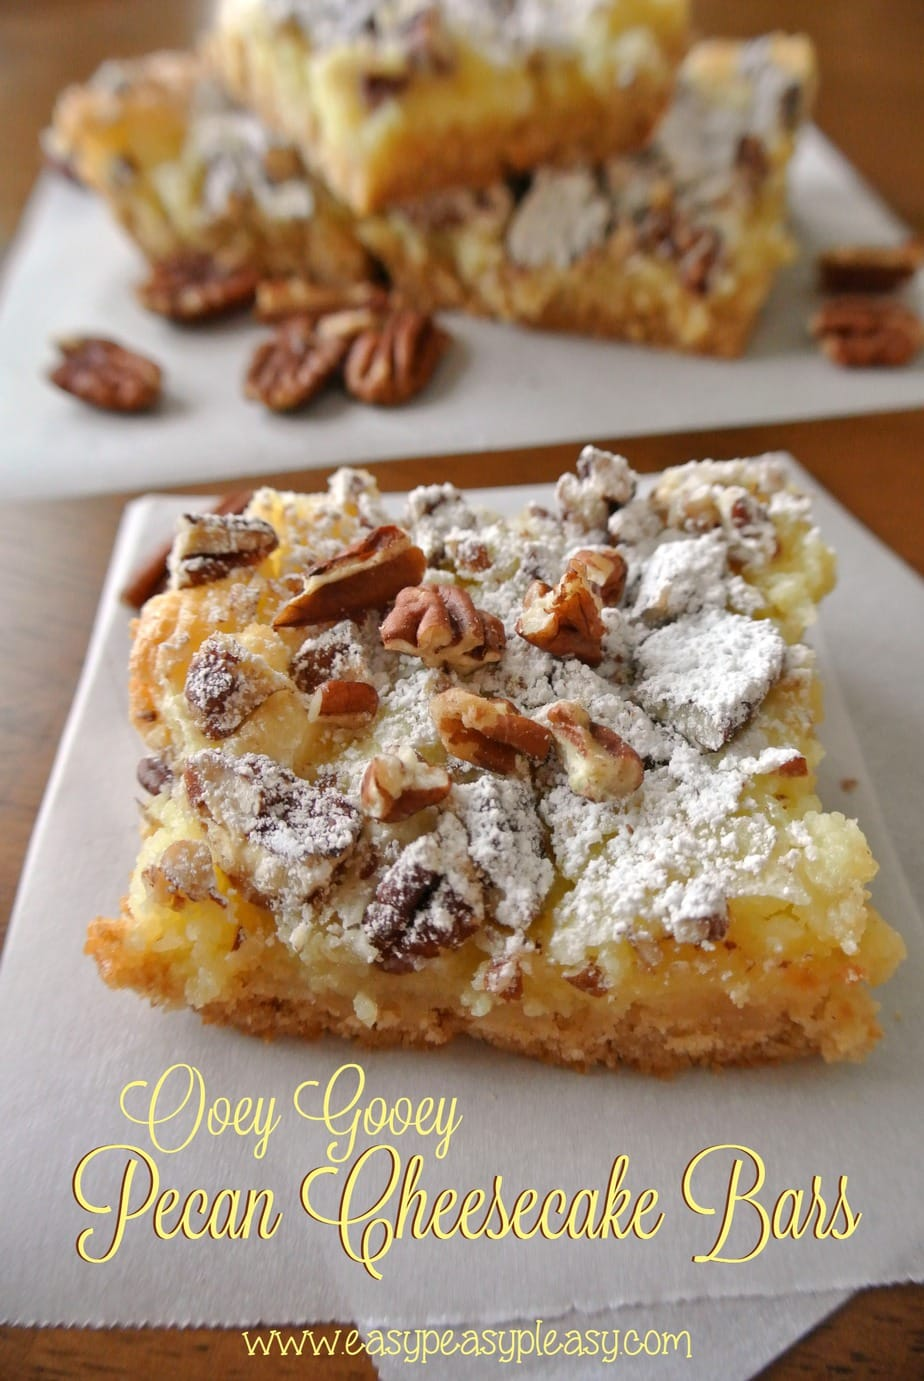 Whip up these easy Ooey Gooey Pecan Cheesecake Bars in minutes!